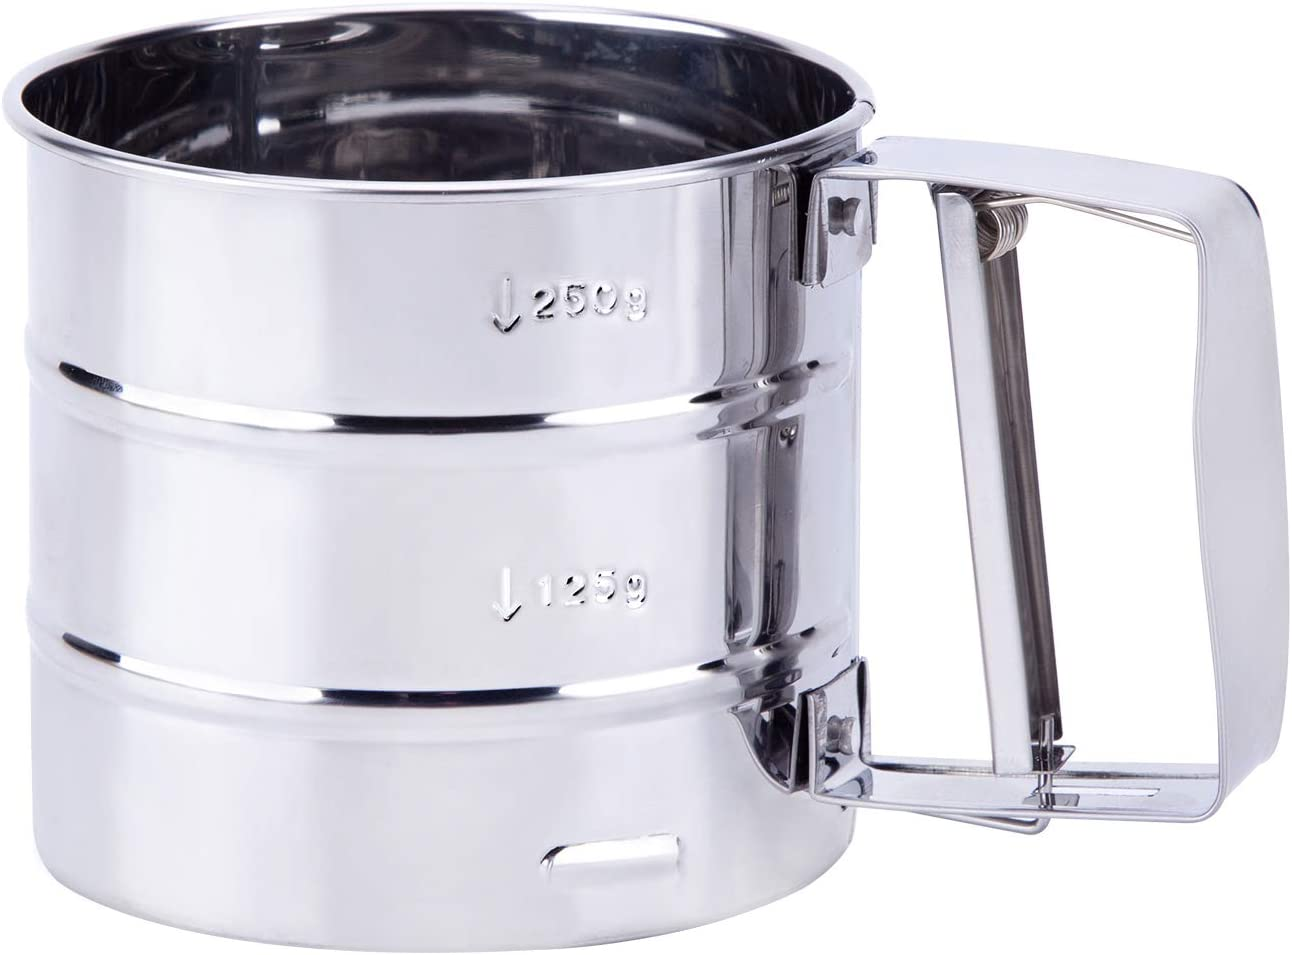 Stainless Steel Flour Sifter Semi Automatic Double Layers Sieve Coffee Powder and Flour Large Baking Sieve Cup for Sugar